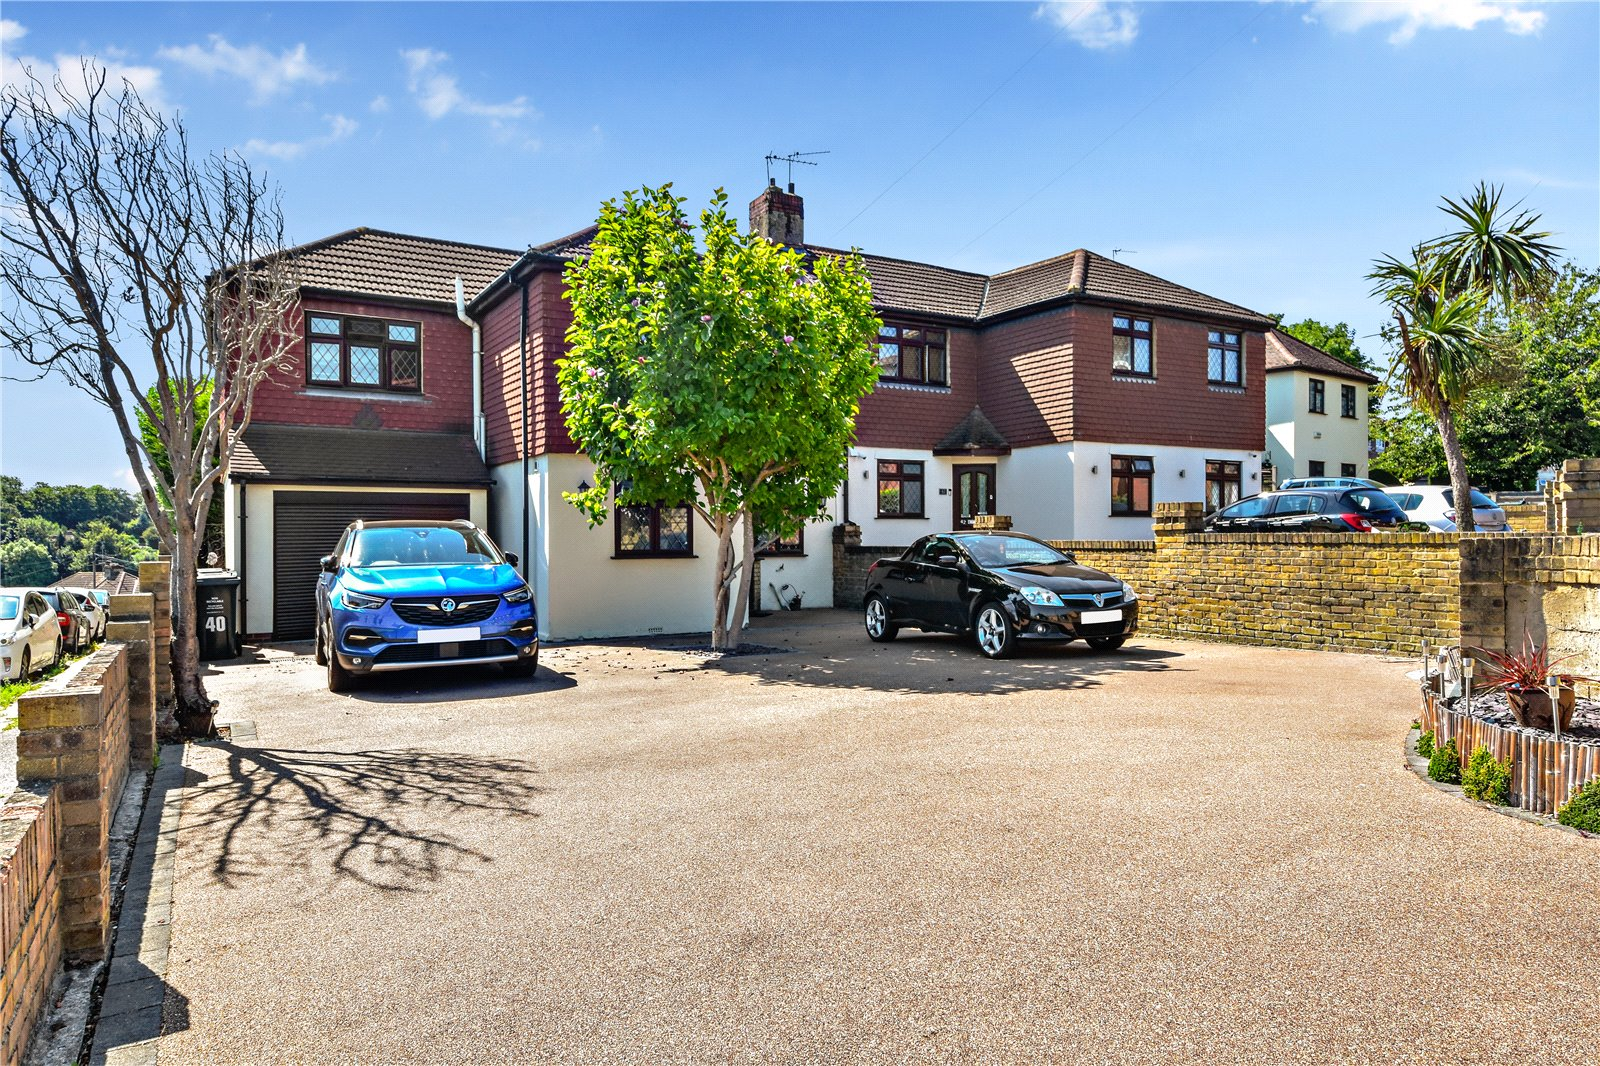 Oakfield Lane, Wilmington, Dartford, Kent, DA1